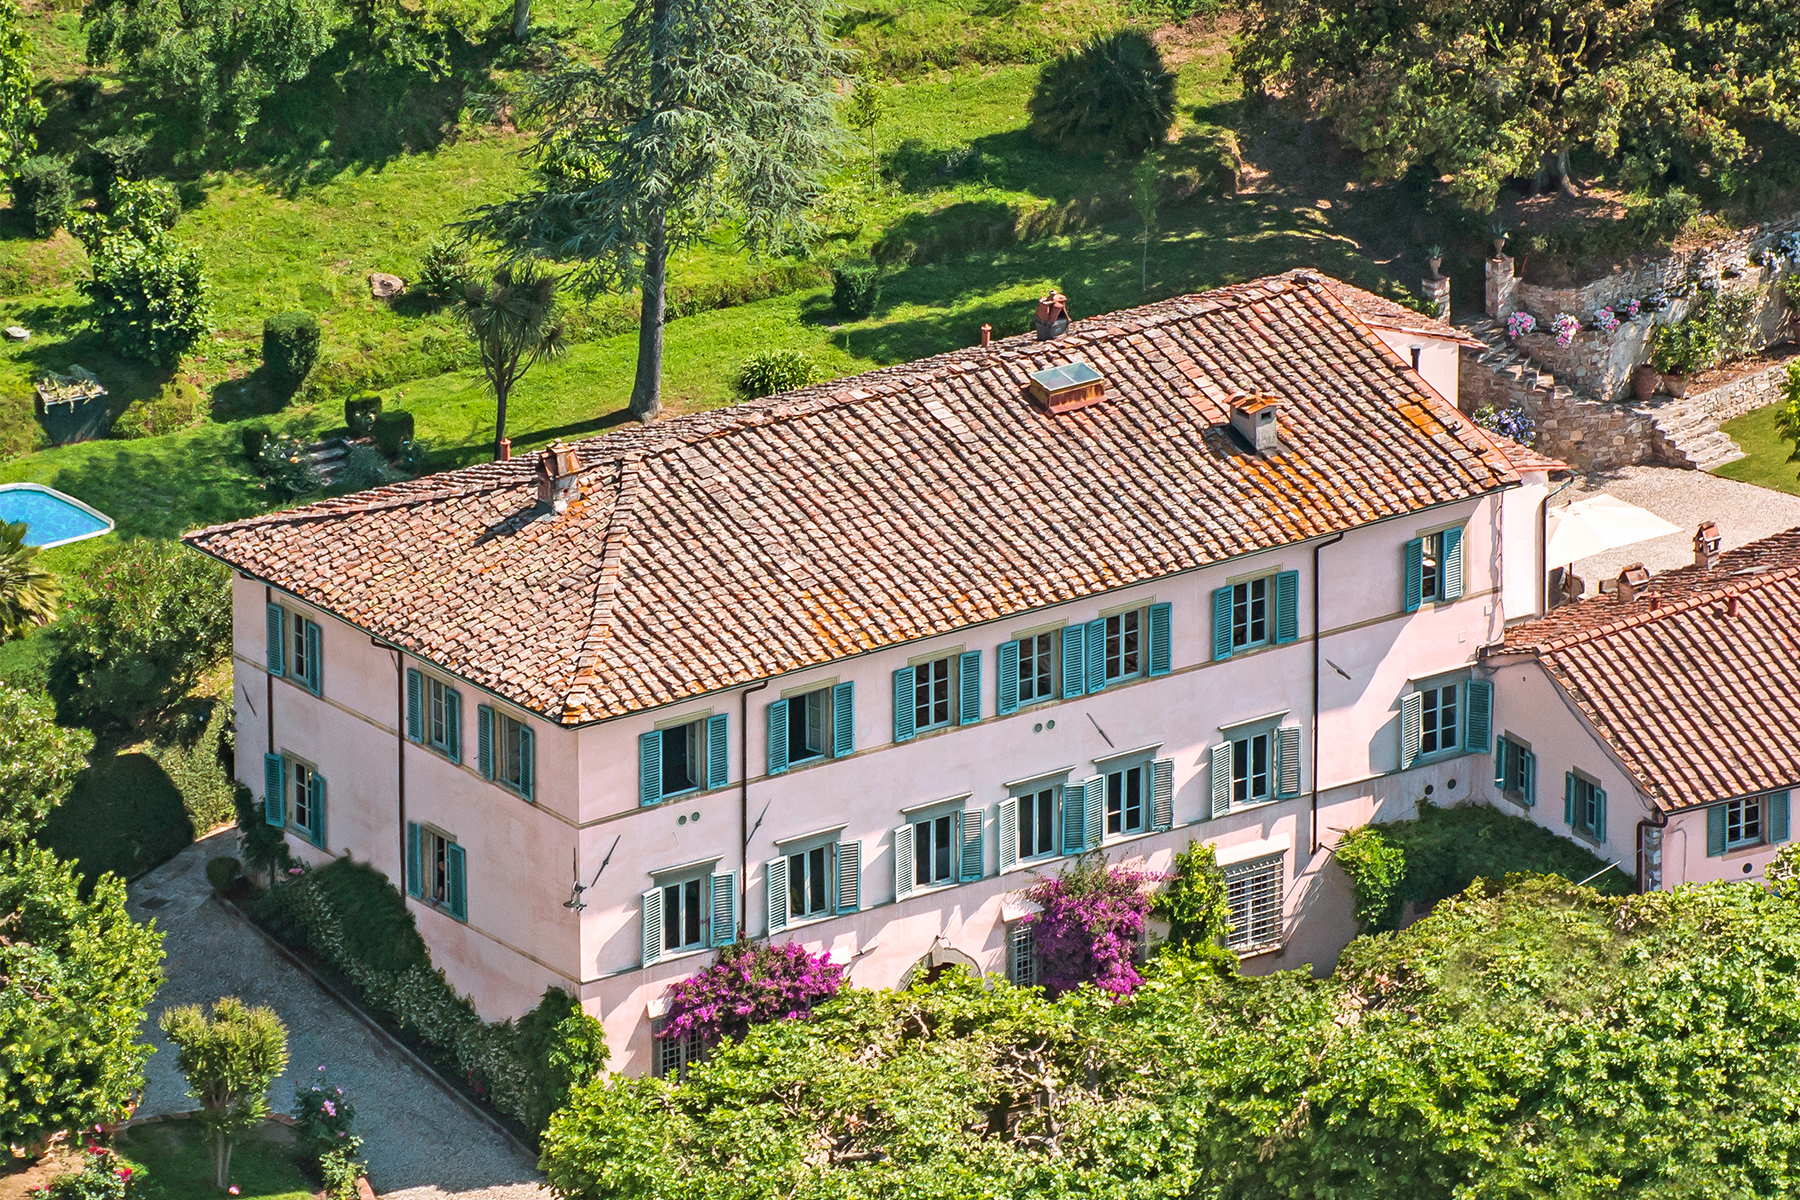 Single Family Home for Sale at Traditional two story villa overlooking the valley Lucca, Lucca Italy